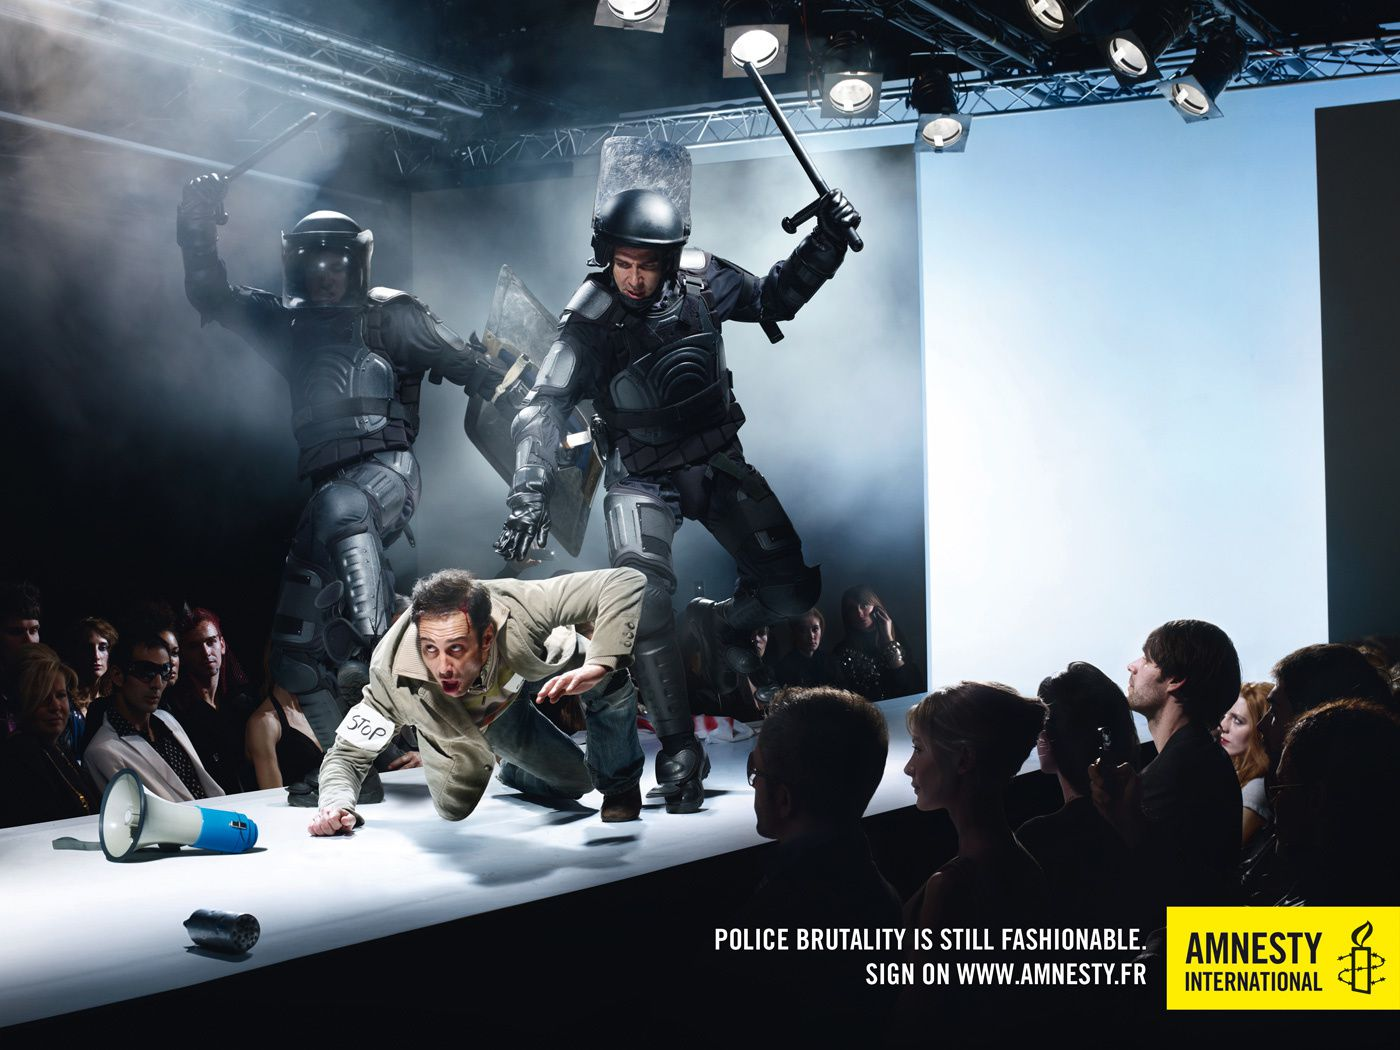 amnesty-international-police.jpg